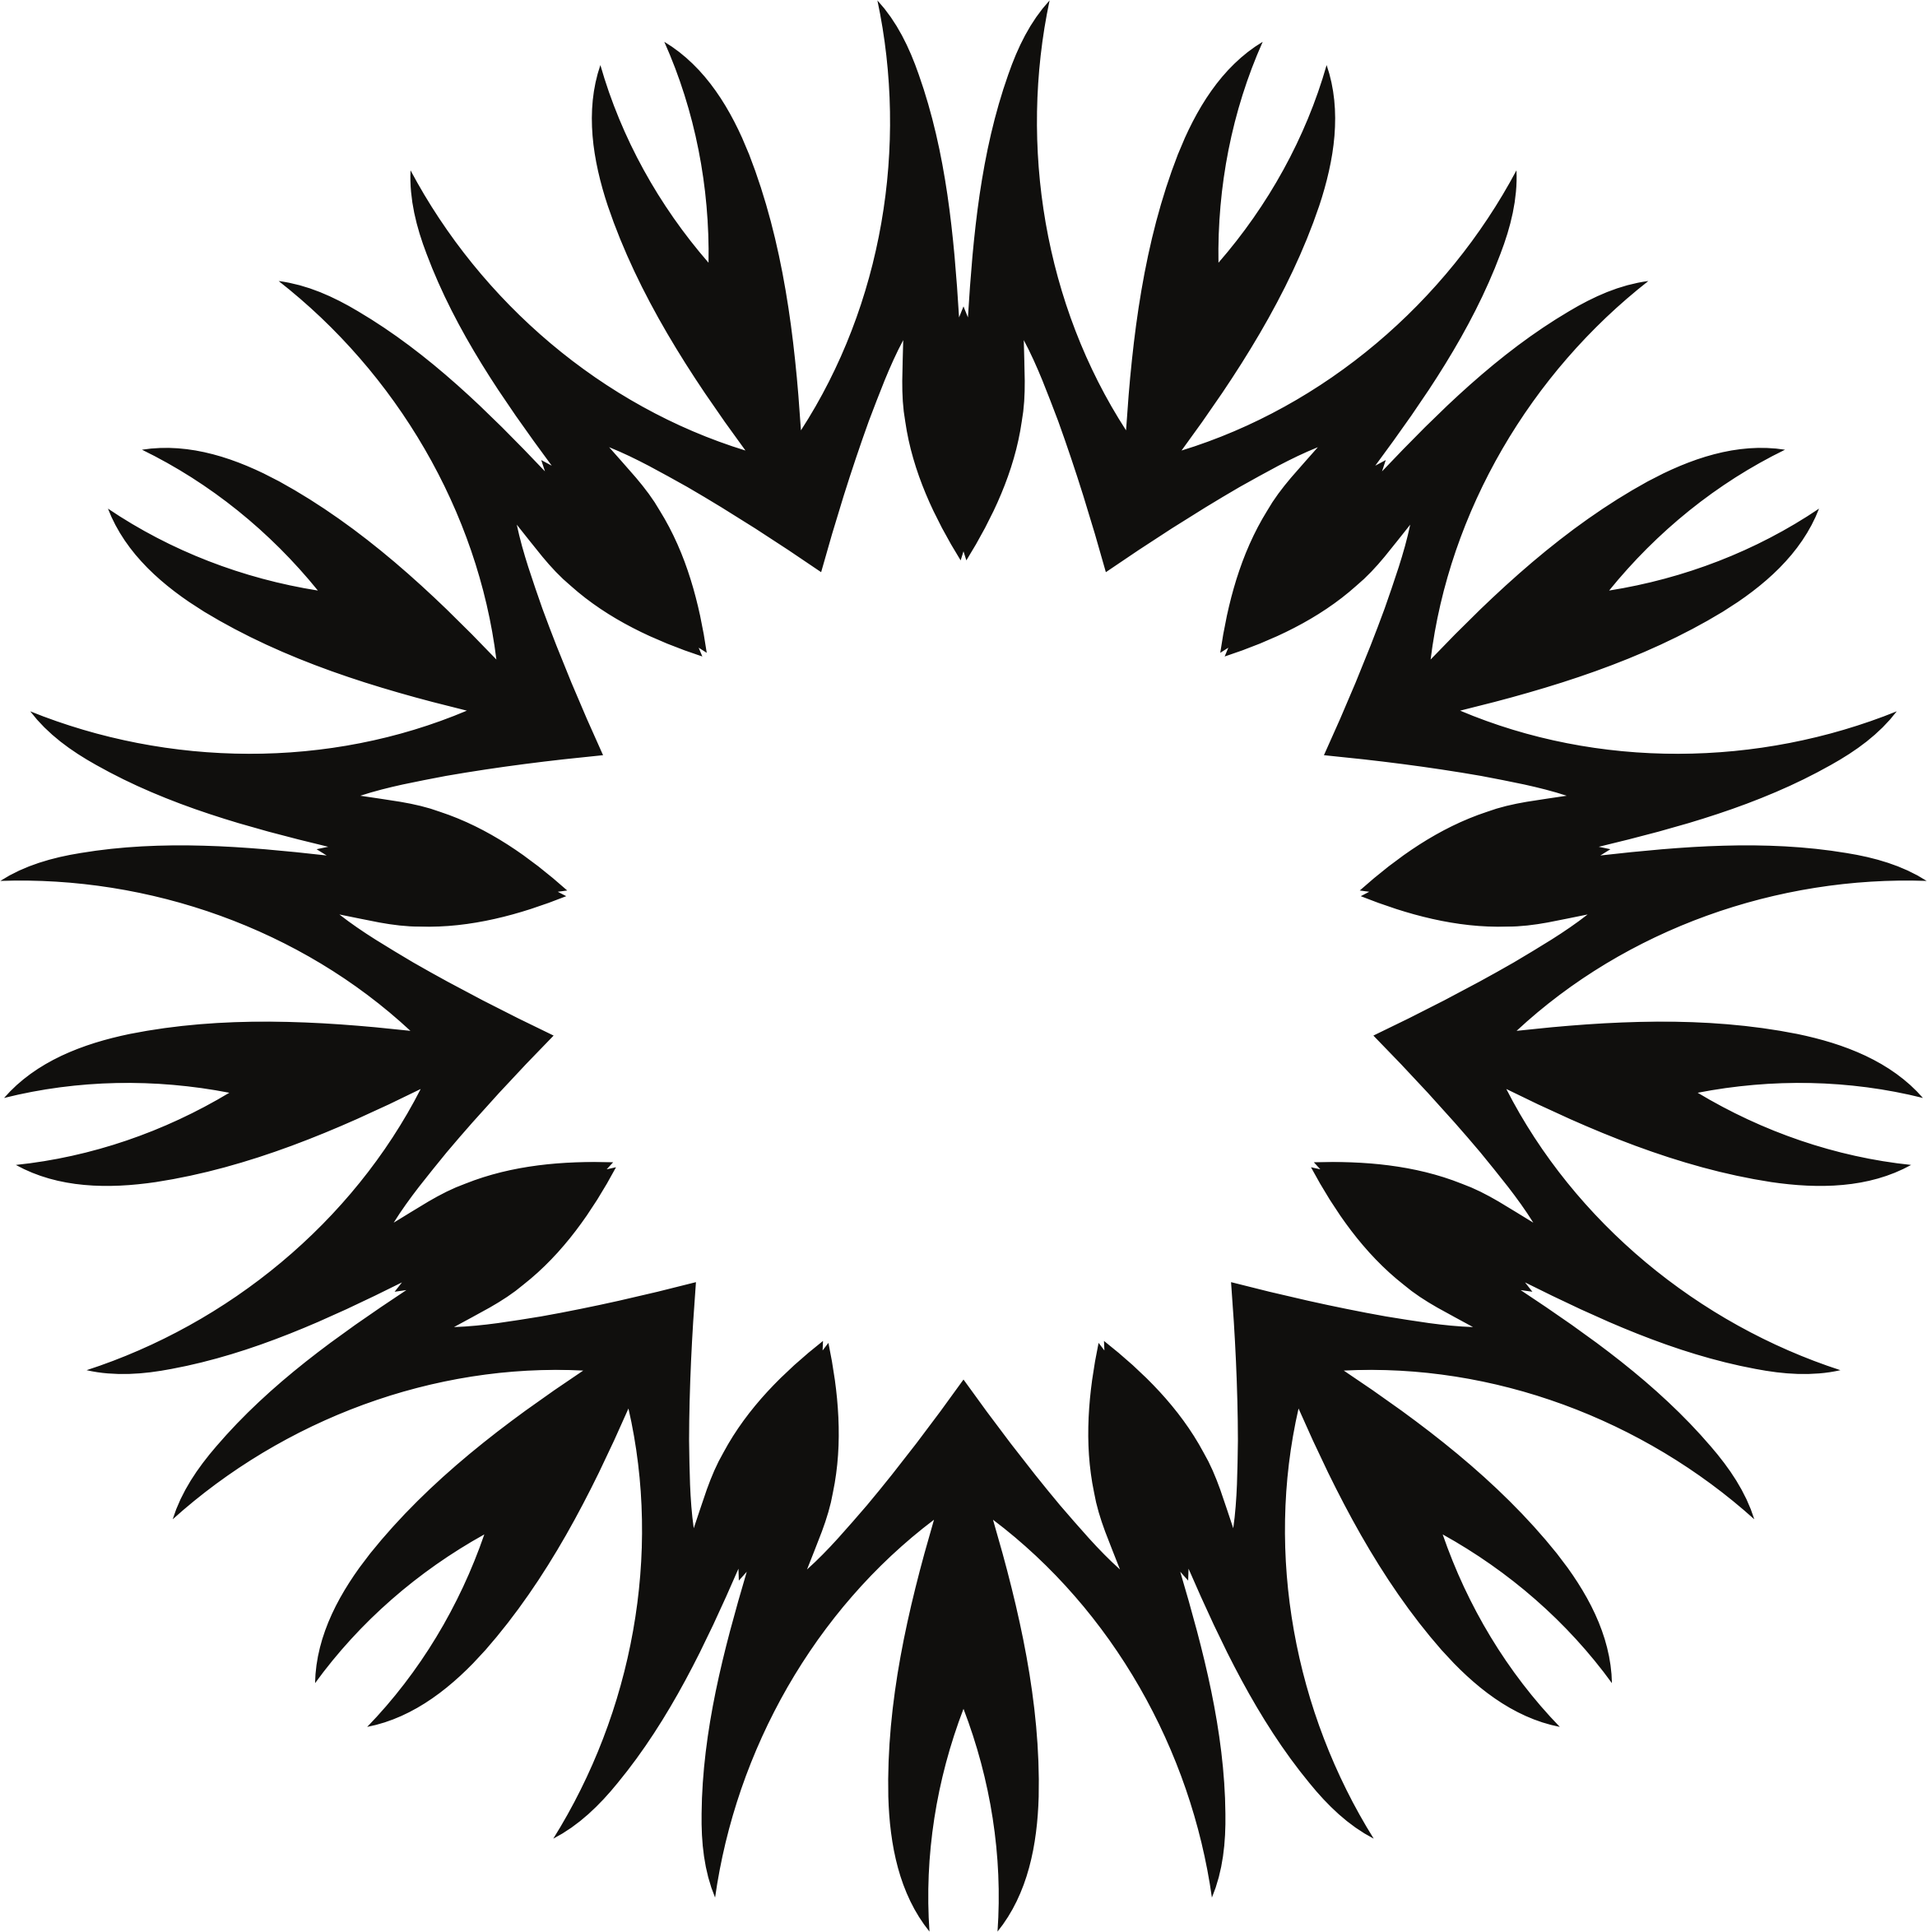 Geometric sun png. Black icons free and